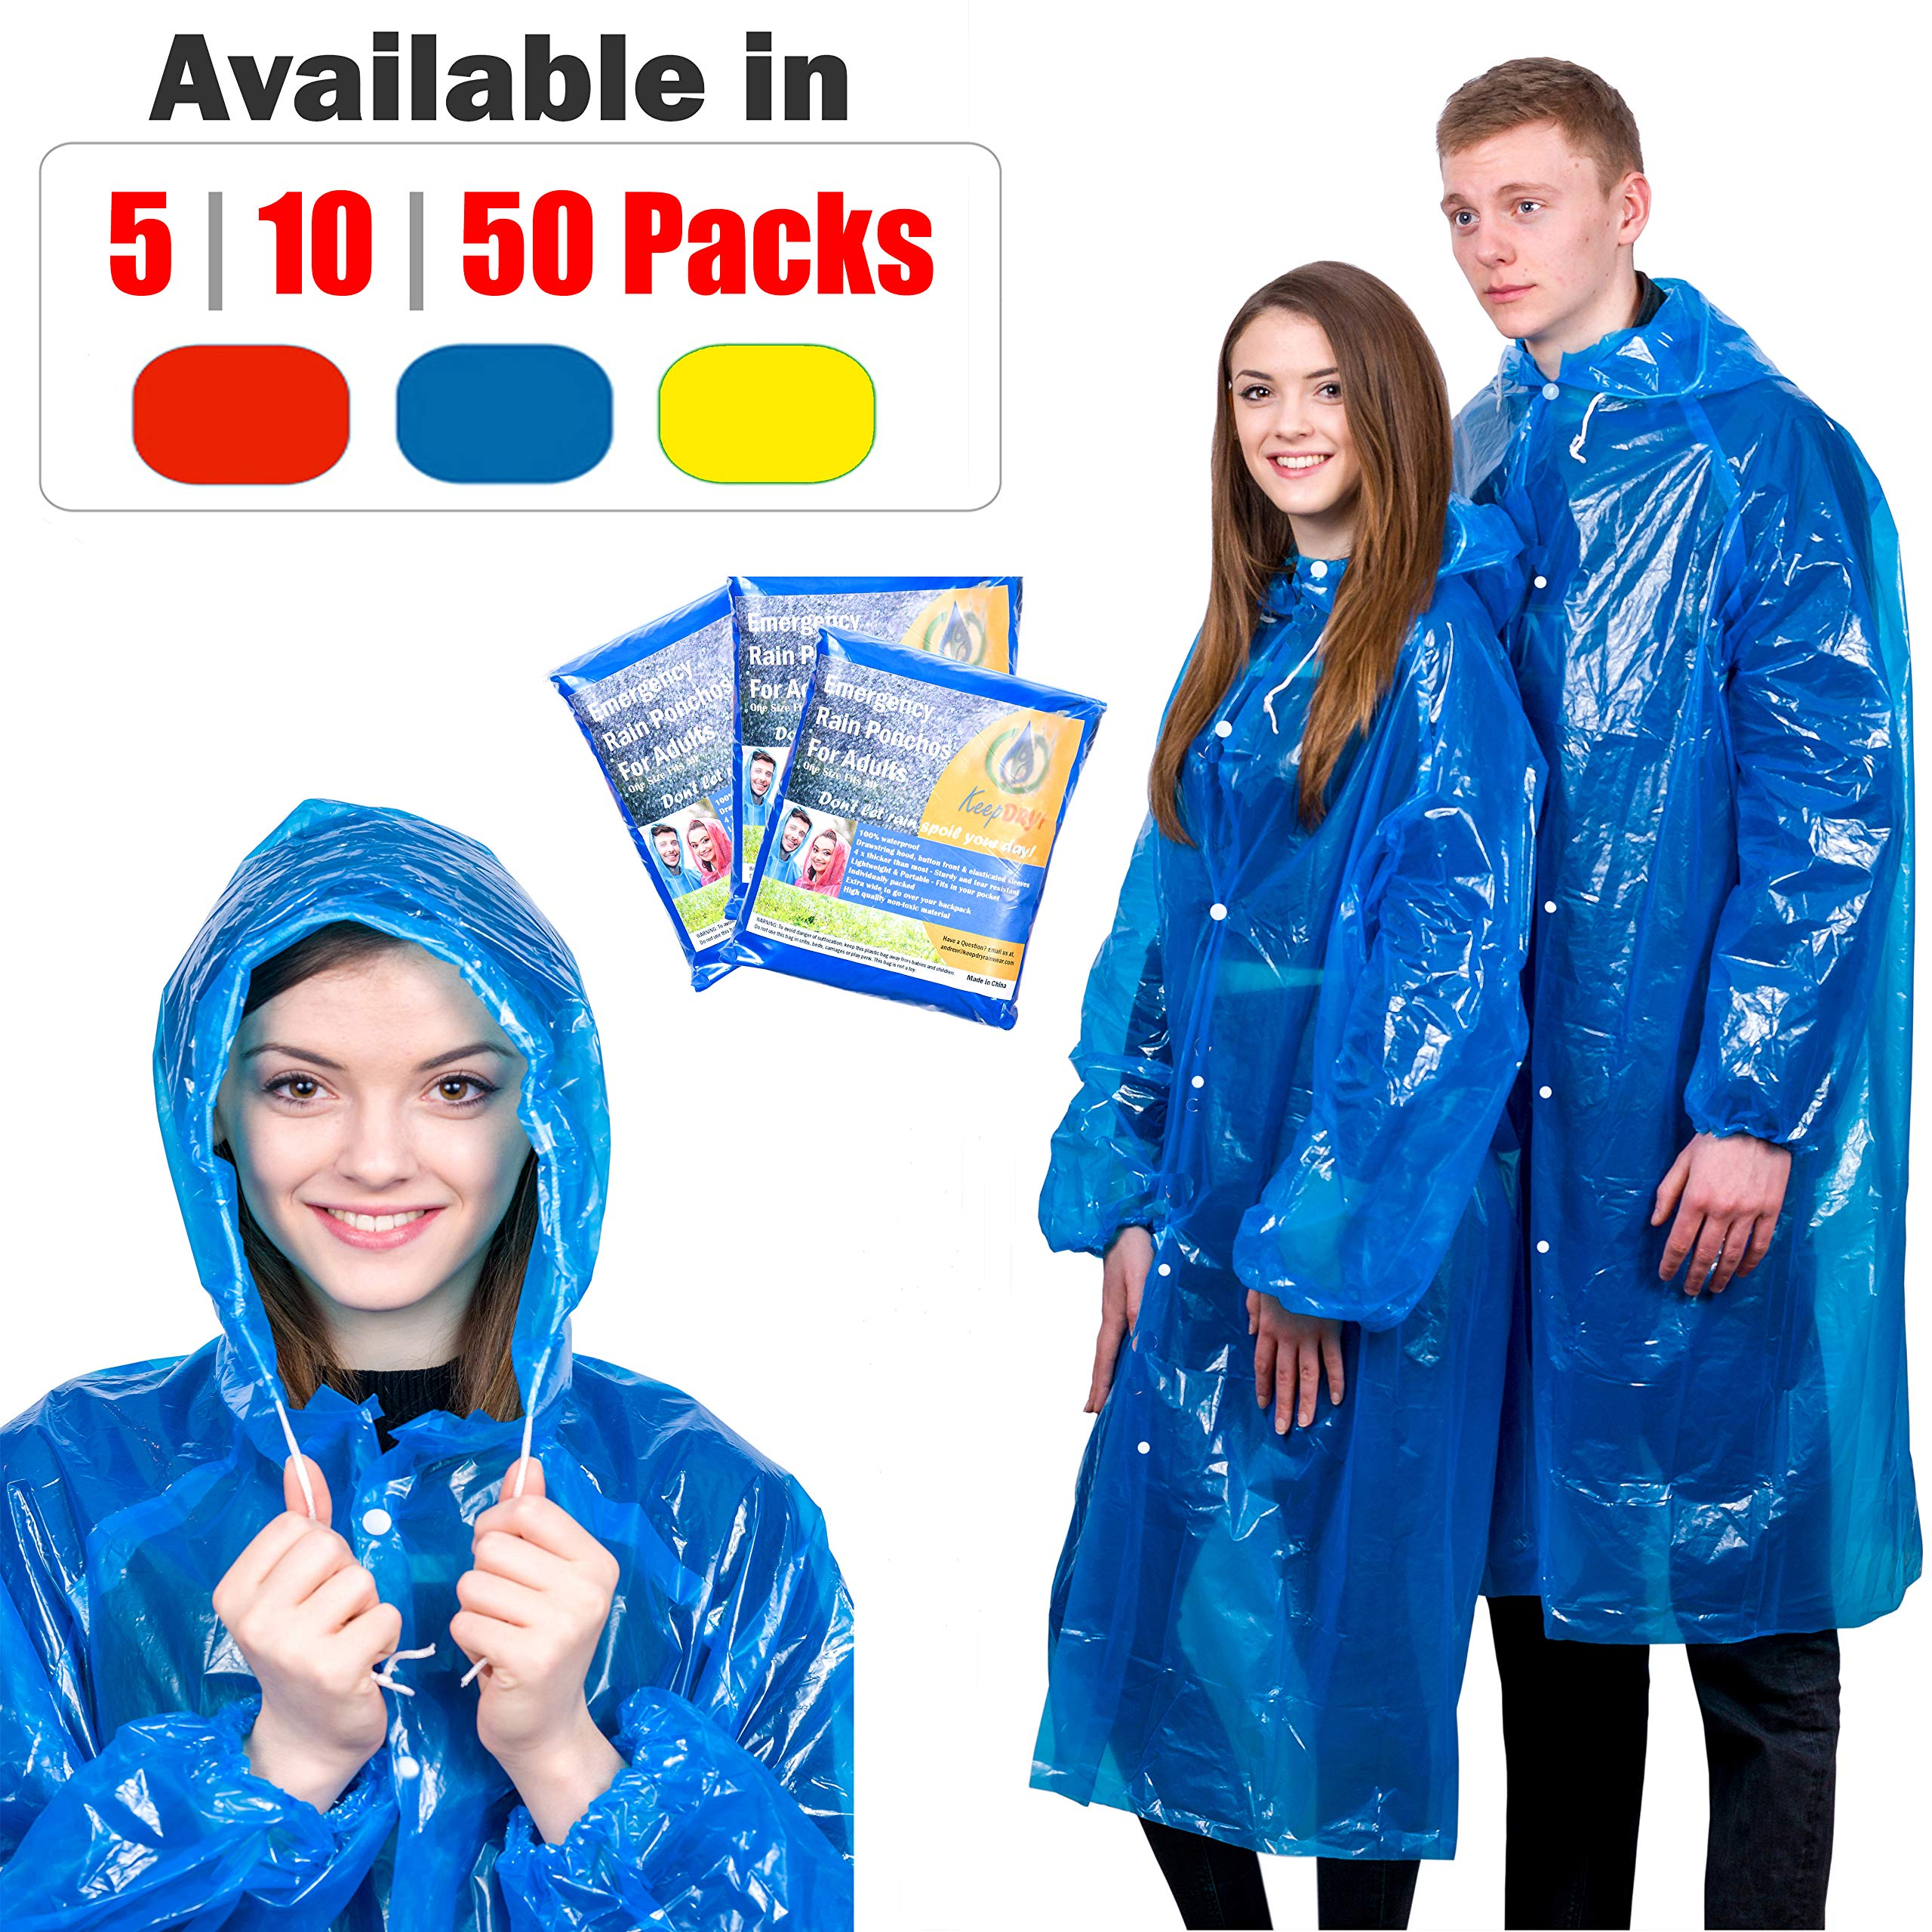 KeepDry! Extra Thick Disposable Emergency Rain Ponchos ~ Premium Quality, Lightweight, Waterproof & Tear Resistant ~ for Hiking, Tours, Sightseeing, Disney, Festivals (5 Pack, Blue) by KeepDry!